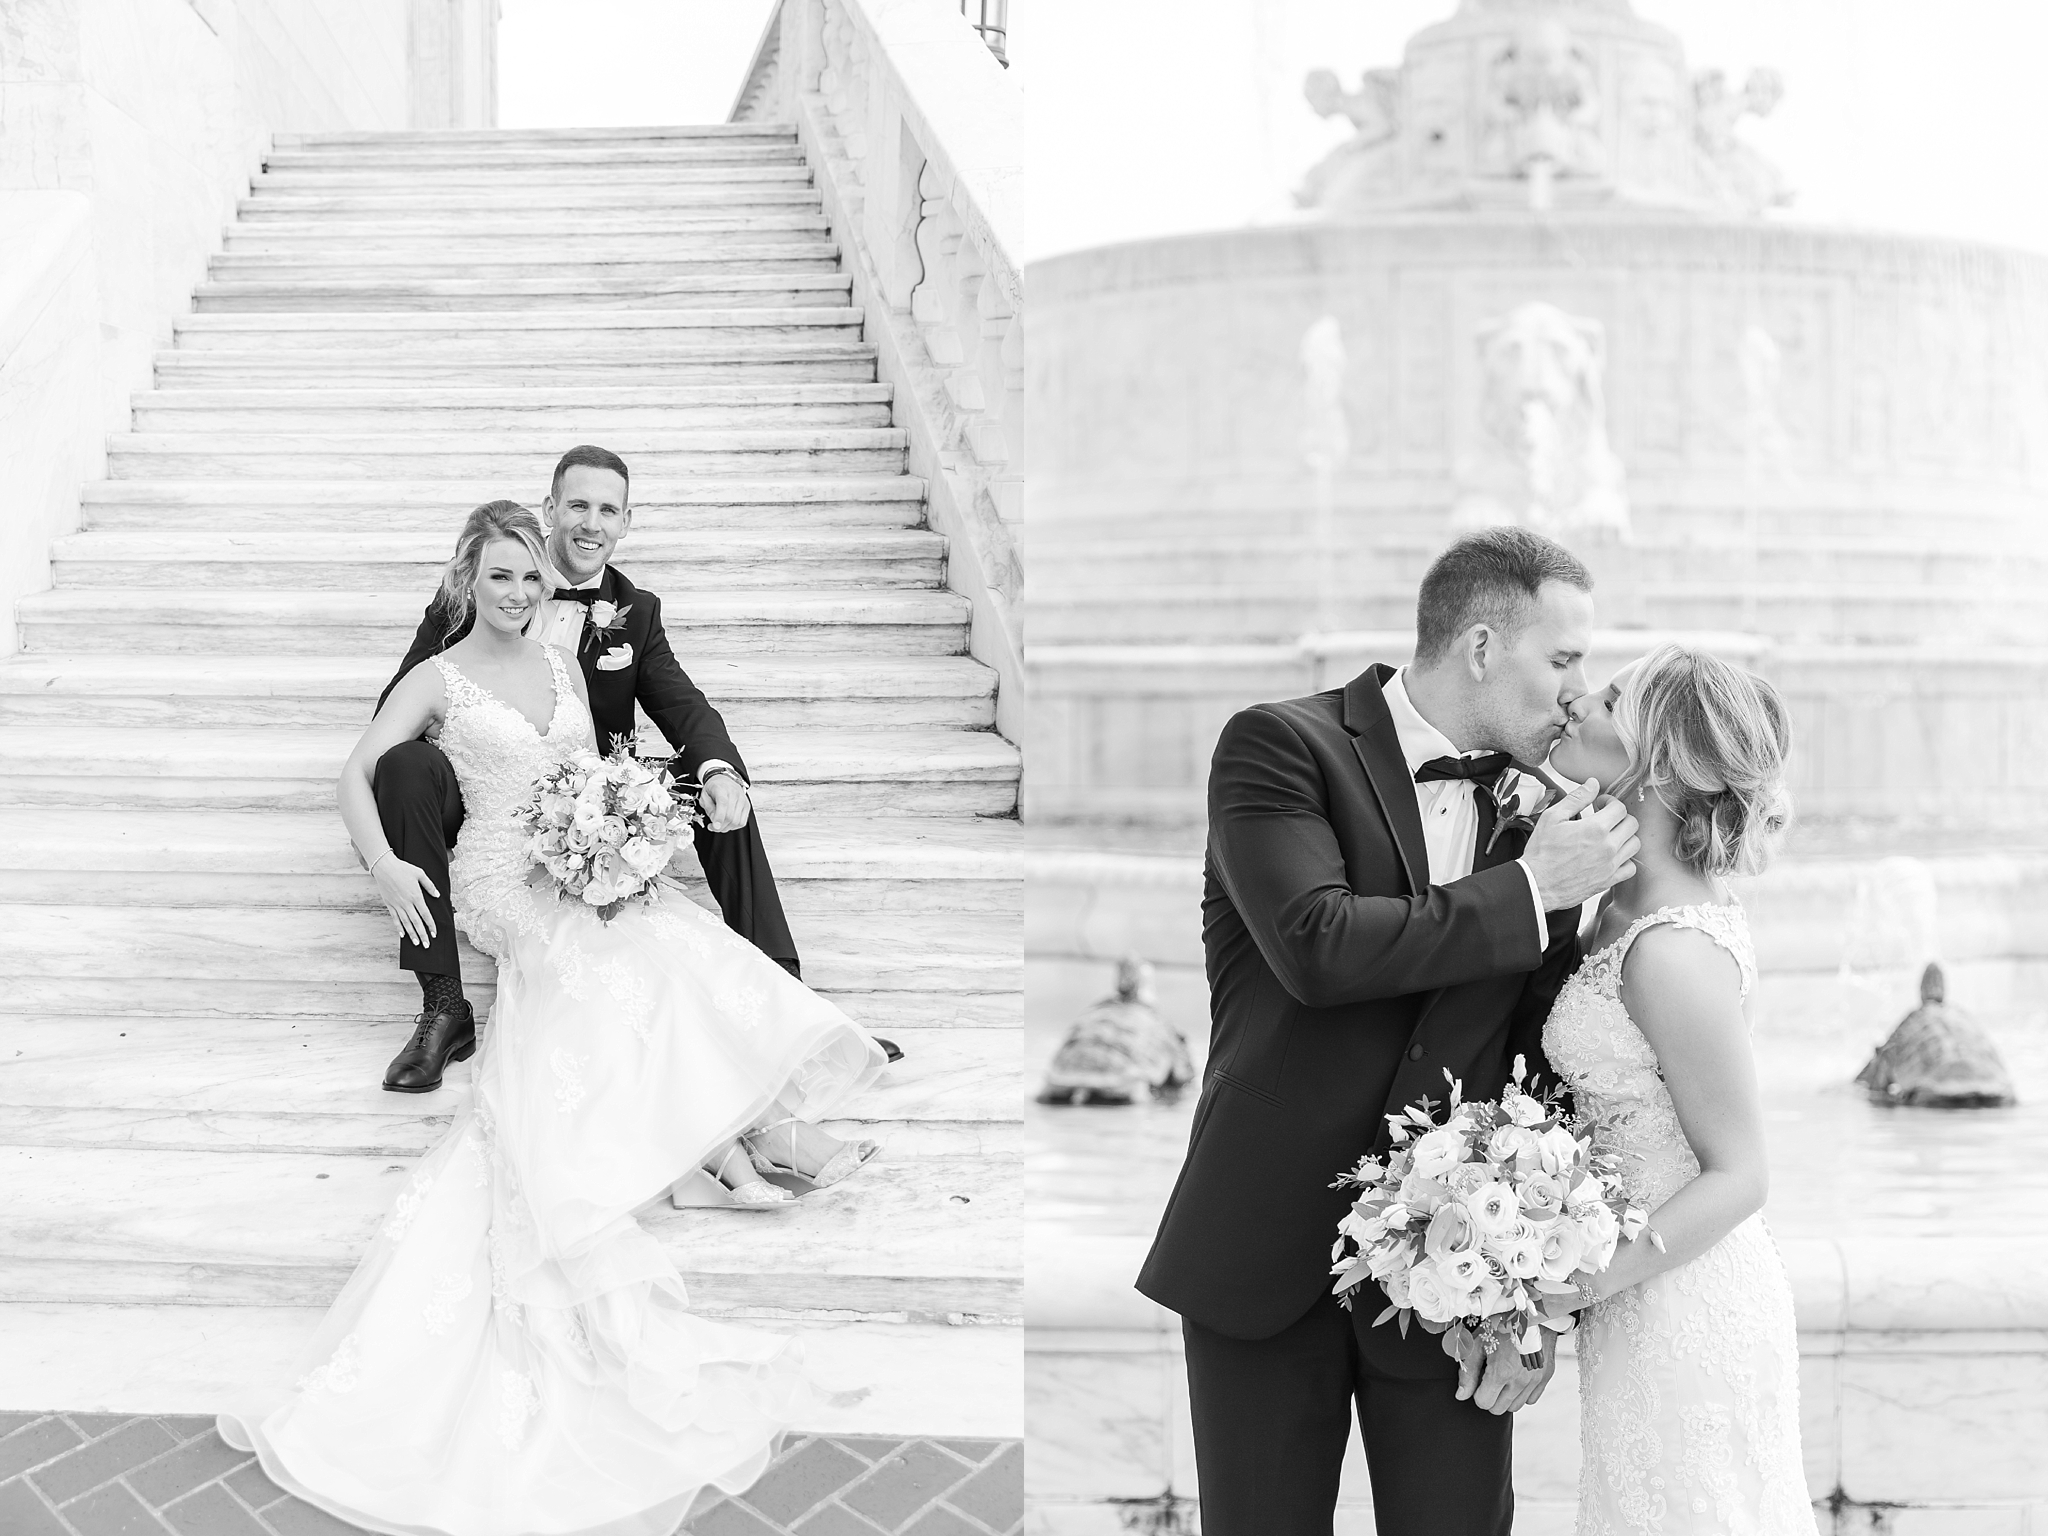 candid-romantic-wedding-photos-at-the-masonic-temple-belle-isle-detroit-institute-of-arts-in-detroit-michigan-by-courtney-carolyn-photography_0042.jpg